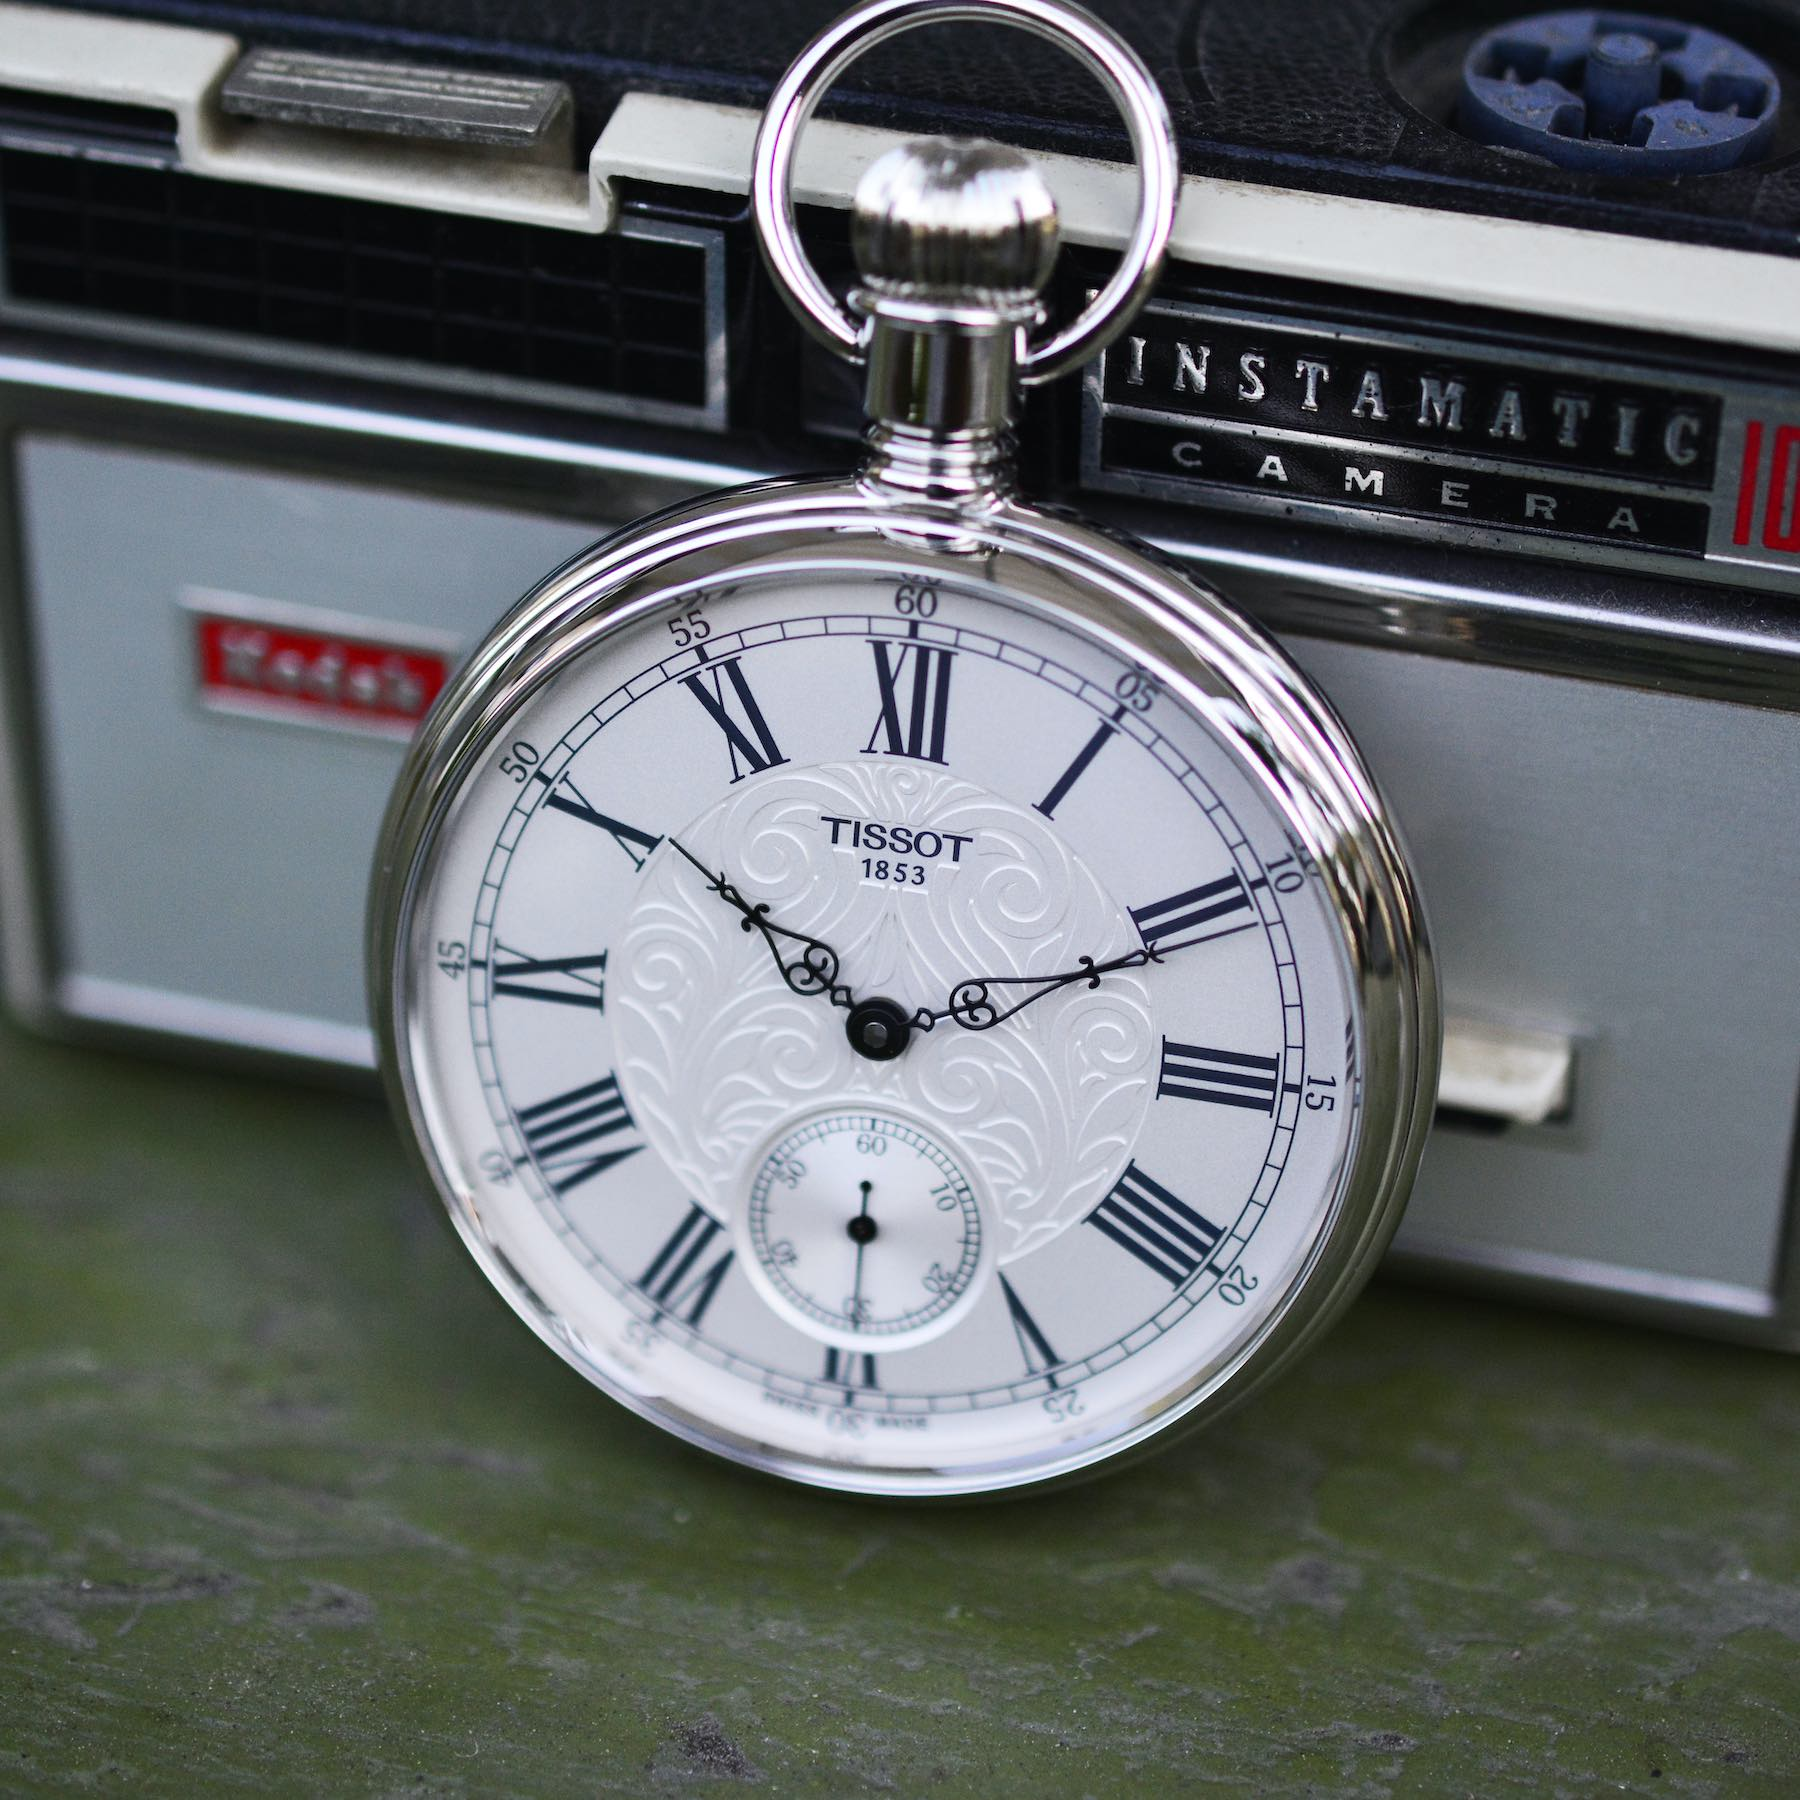 Is There Still a Place for Pocket Watches in the 21st Century